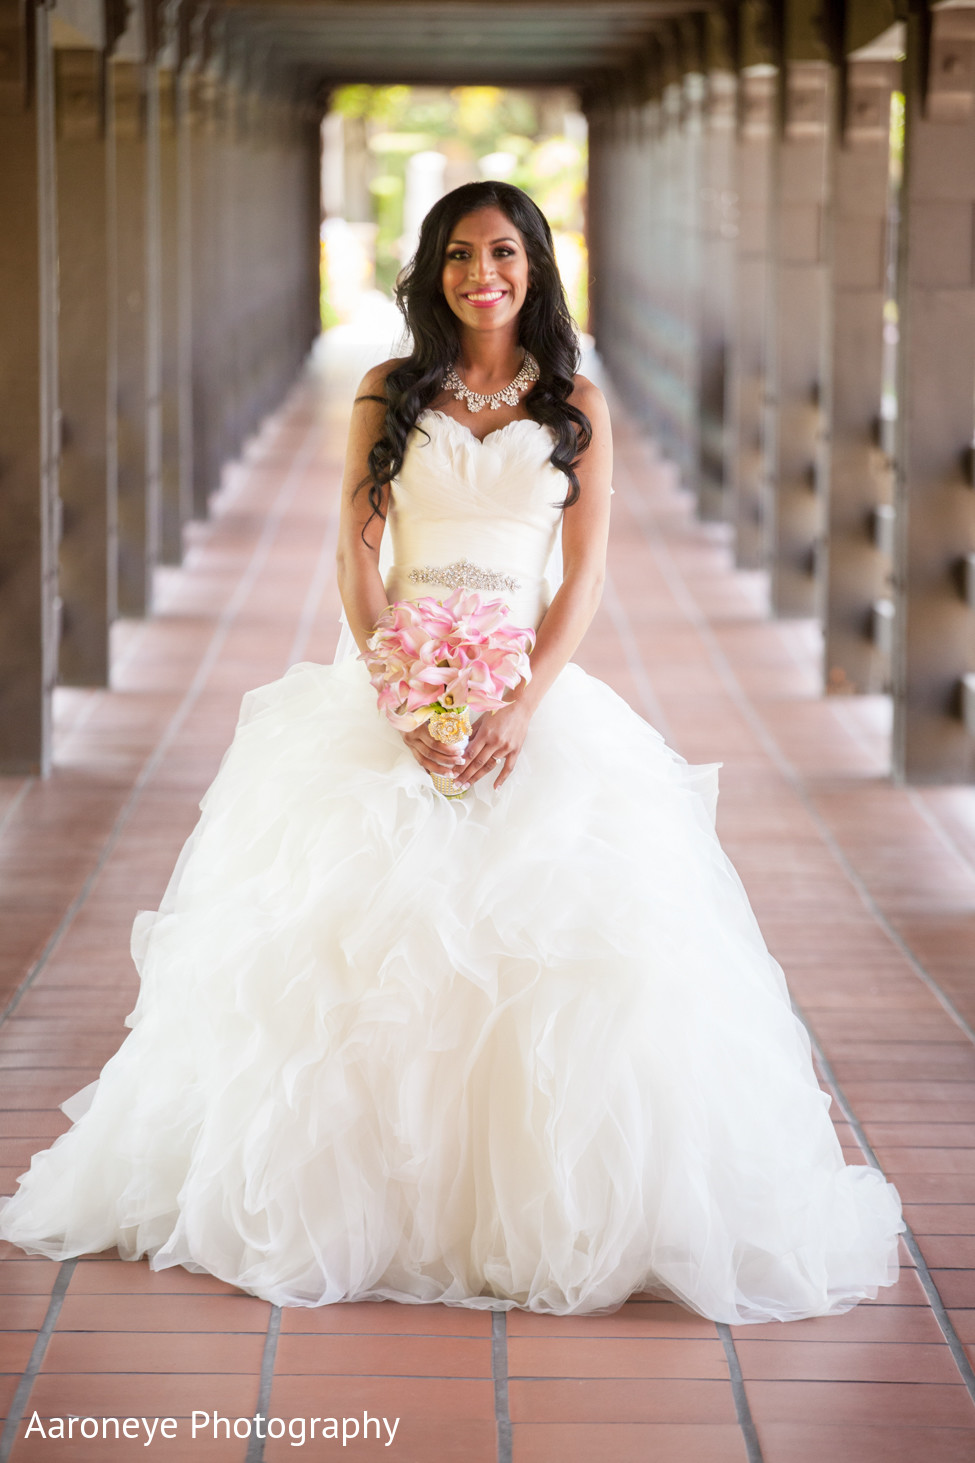 Pasadena, CA Indian Wedding by Aaroneye Photography | Post #4492